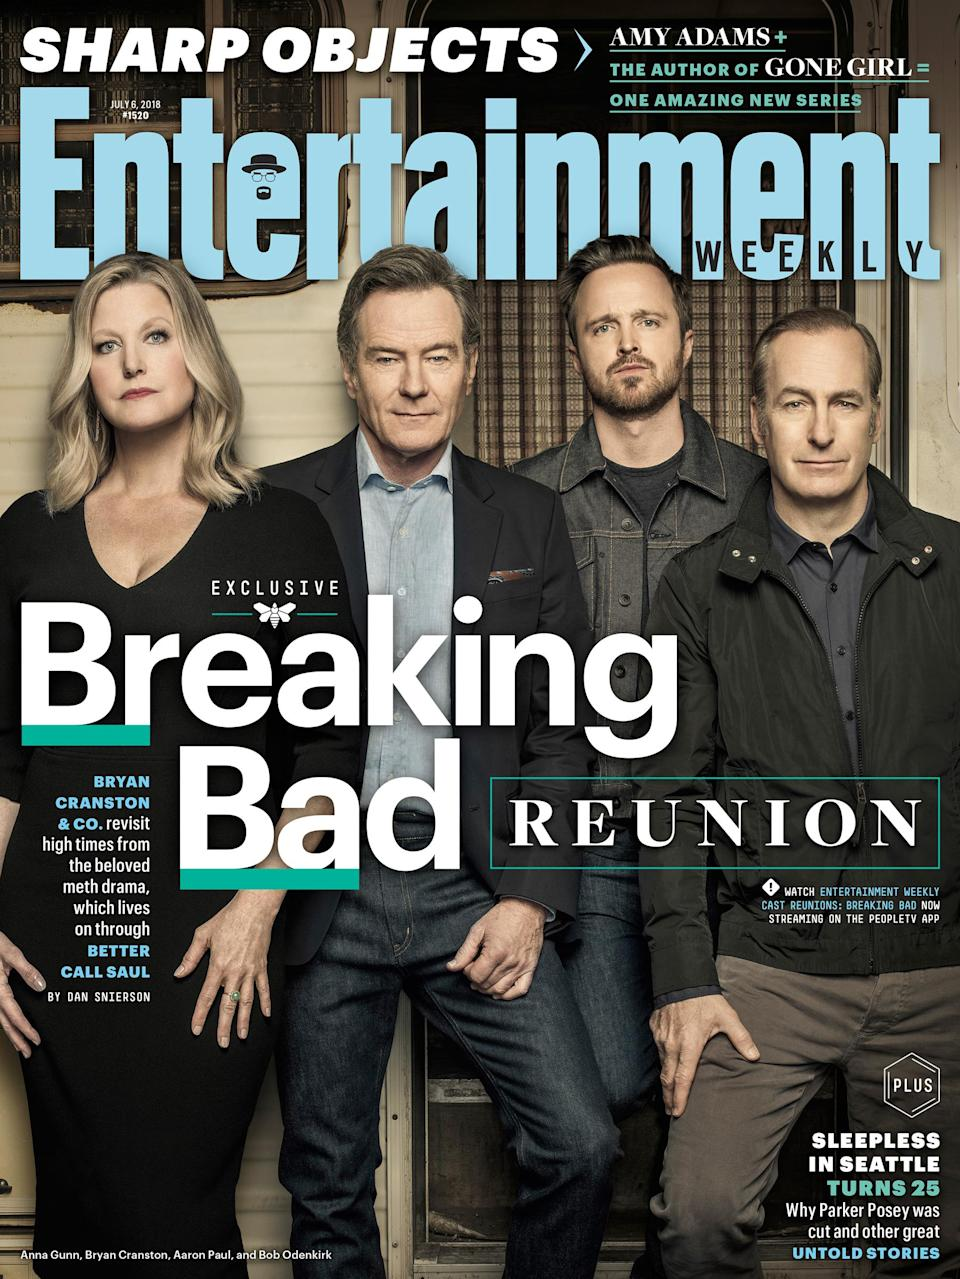 """Anna Gunn, Bryan Cranston, Aaron Paul, Bob Odenkirk, and the rest of the cast <a rel=""""nofollow noopener"""" href=""""https://ew.com/tv/2018/06/28/breaking-bad-reunion-ew-cover/"""" target=""""_blank"""" data-ylk=""""slk:reminisced"""" class=""""link rapid-noclick-resp"""">reminisced</a> about the award-winning <a rel=""""nofollow noopener"""" href=""""https://ew.com/tv/breaking-bad-cast-reunion-photos/"""" target=""""_blank"""" data-ylk=""""slk:drug drama"""" class=""""link rapid-noclick-resp"""">drug drama</a>."""